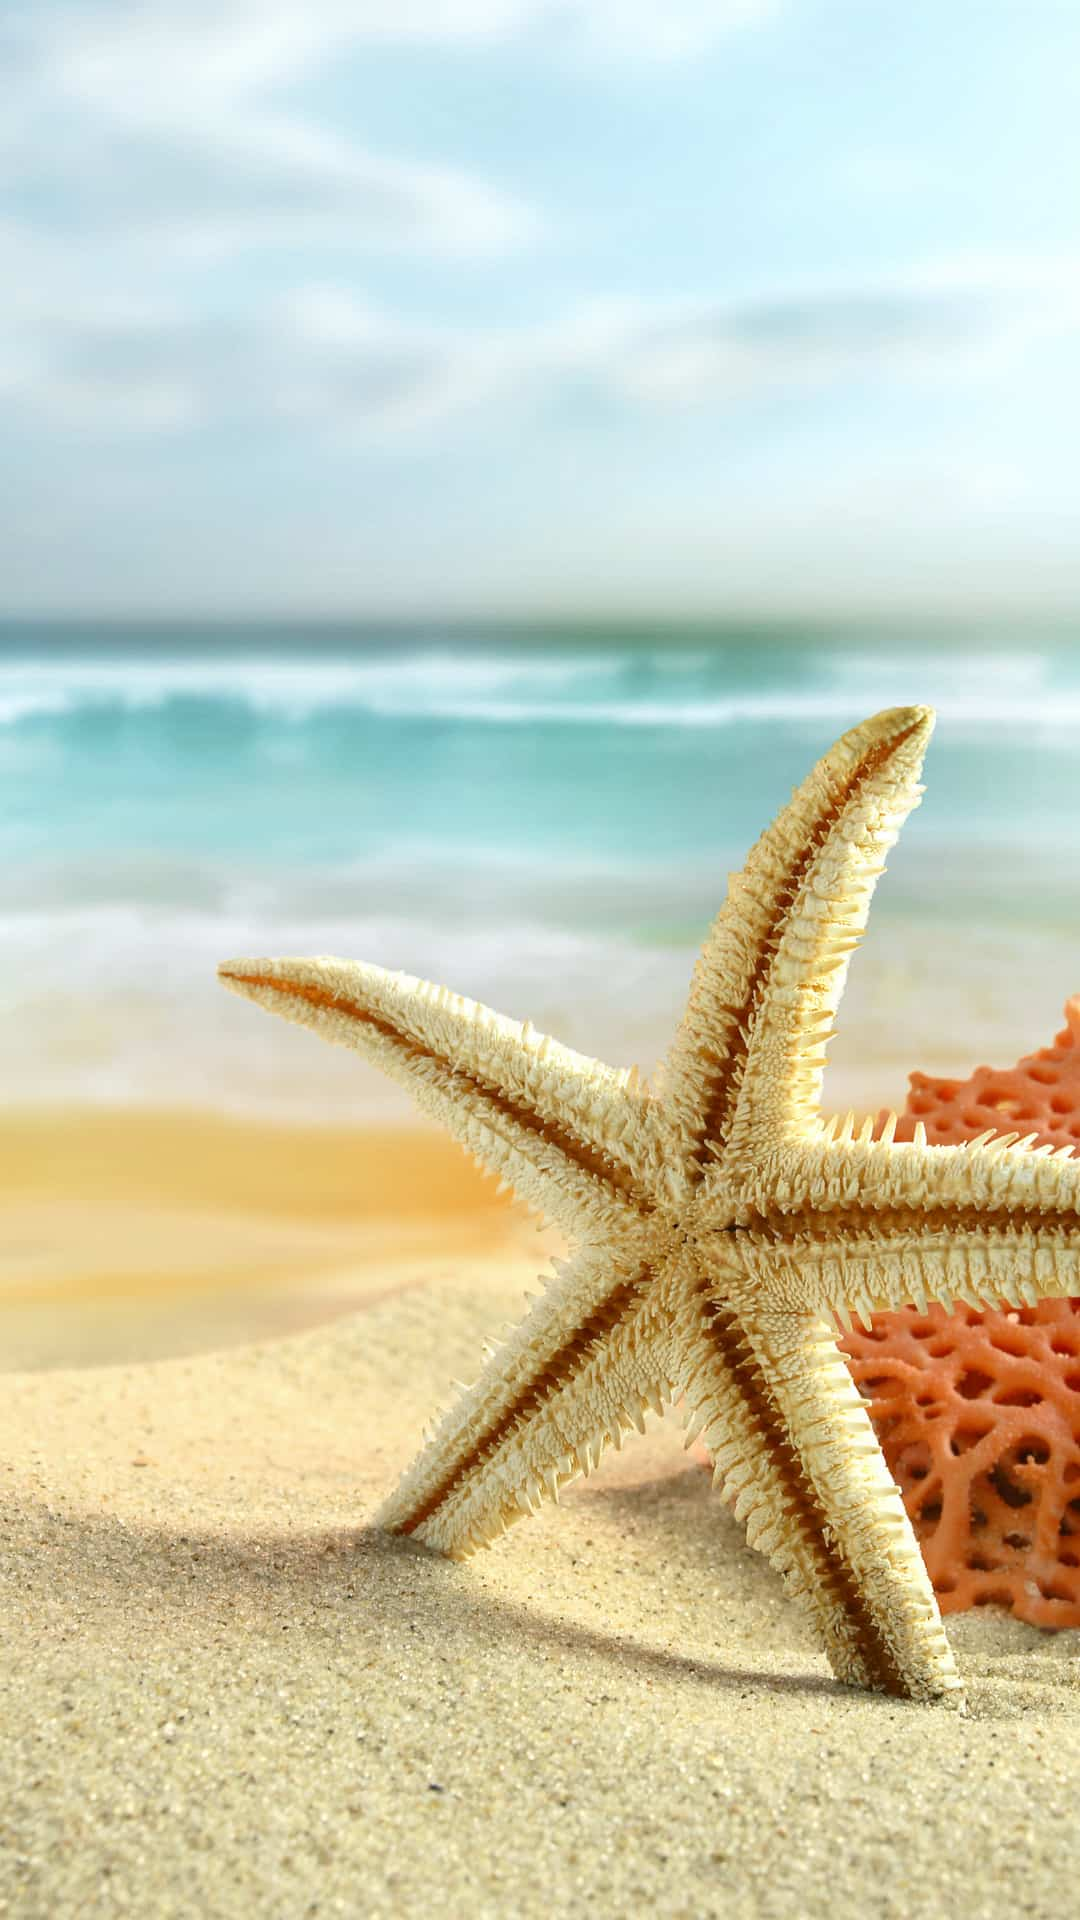 Sea Star Summer Beach Android Wallpaper